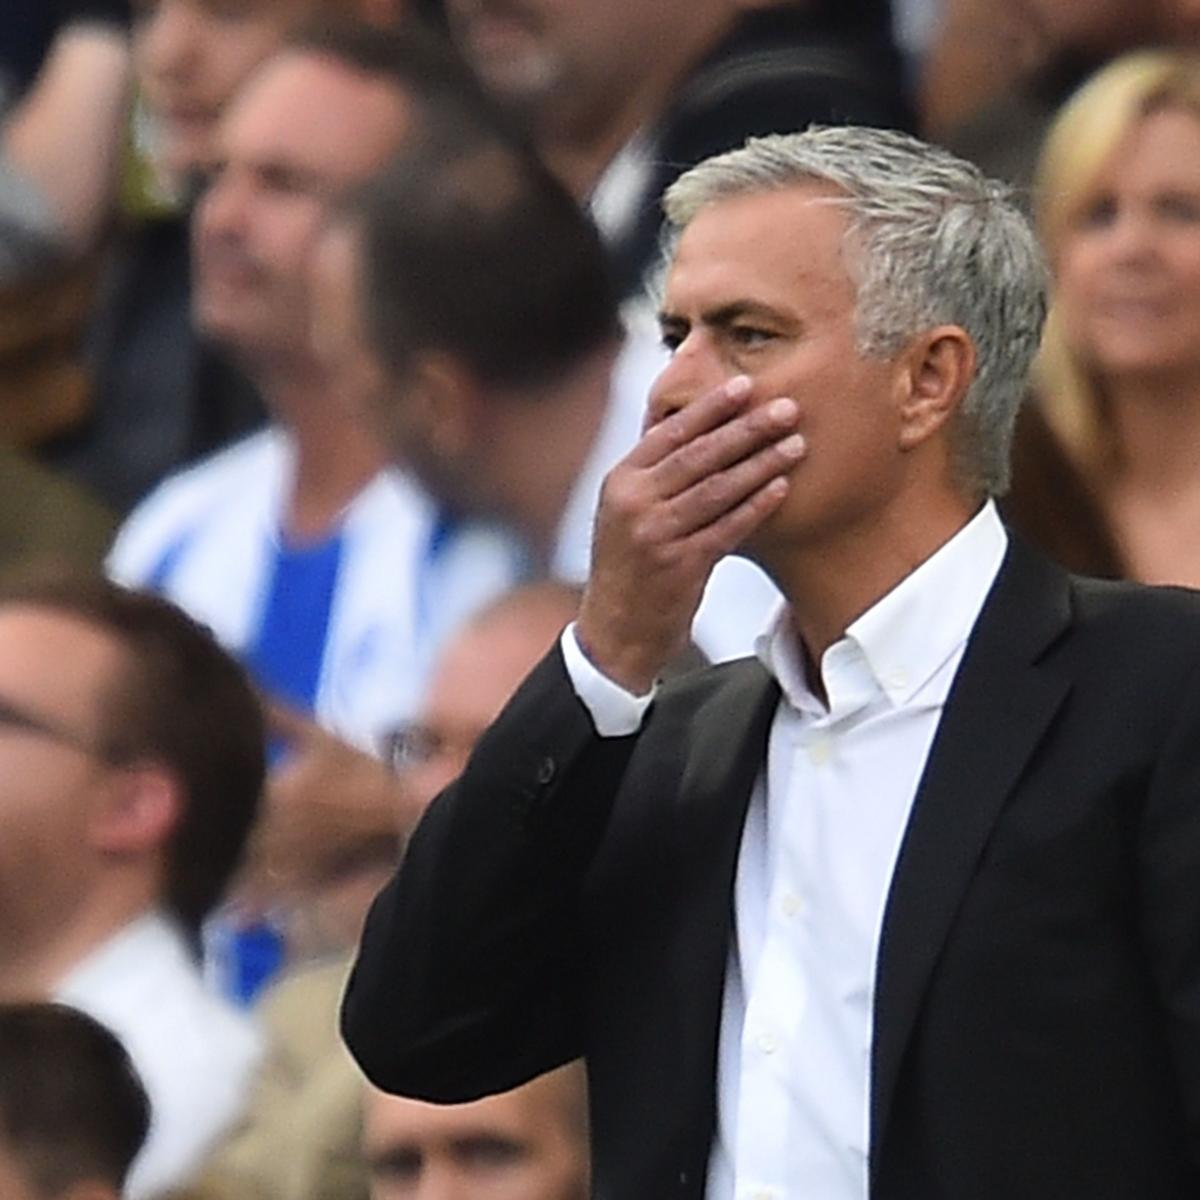 Jose Mourinho Reportedly Has 'Full Backing' of Manchester United Board